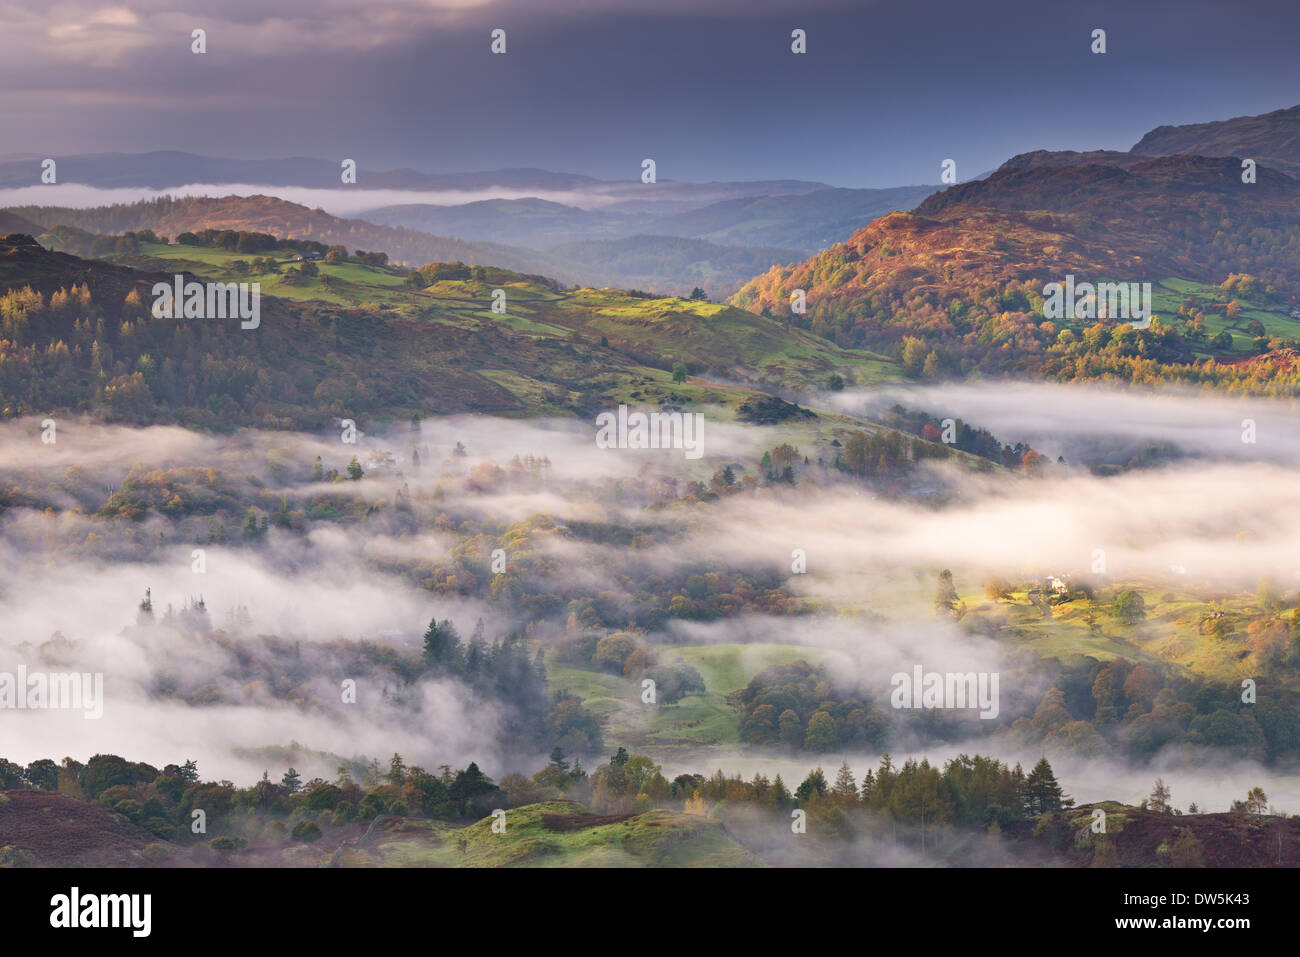 Mist covered fells in the Lake District National Park, Cumbria, England. Autumn (October) 2012. - Stock Image